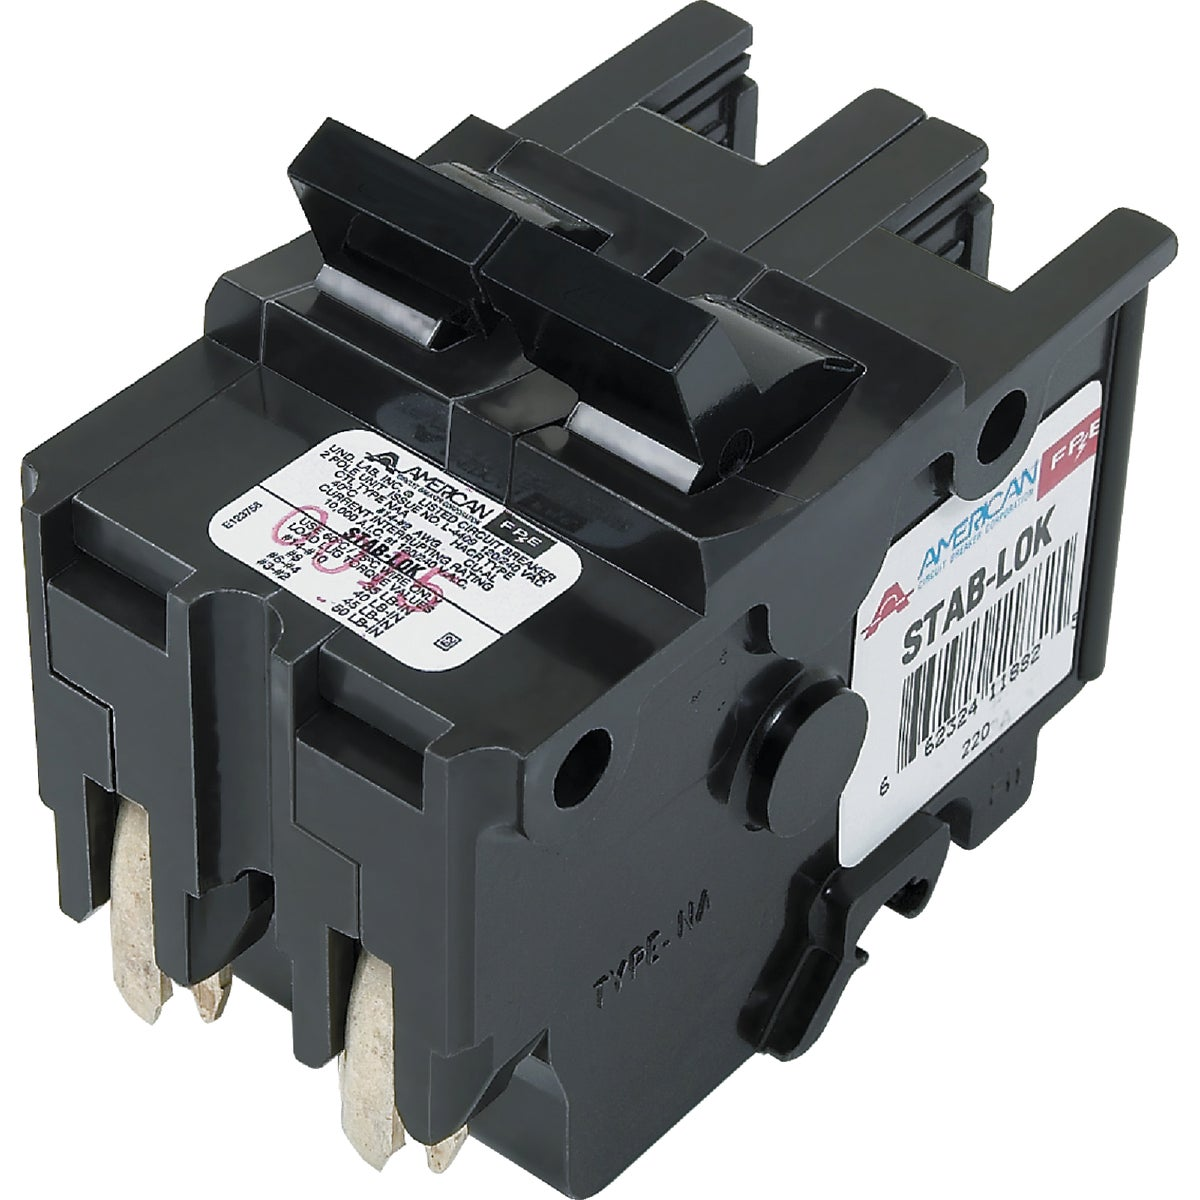 50A 2P CIRCUIT BREAKER - UBIF250N by Connecticut Electric